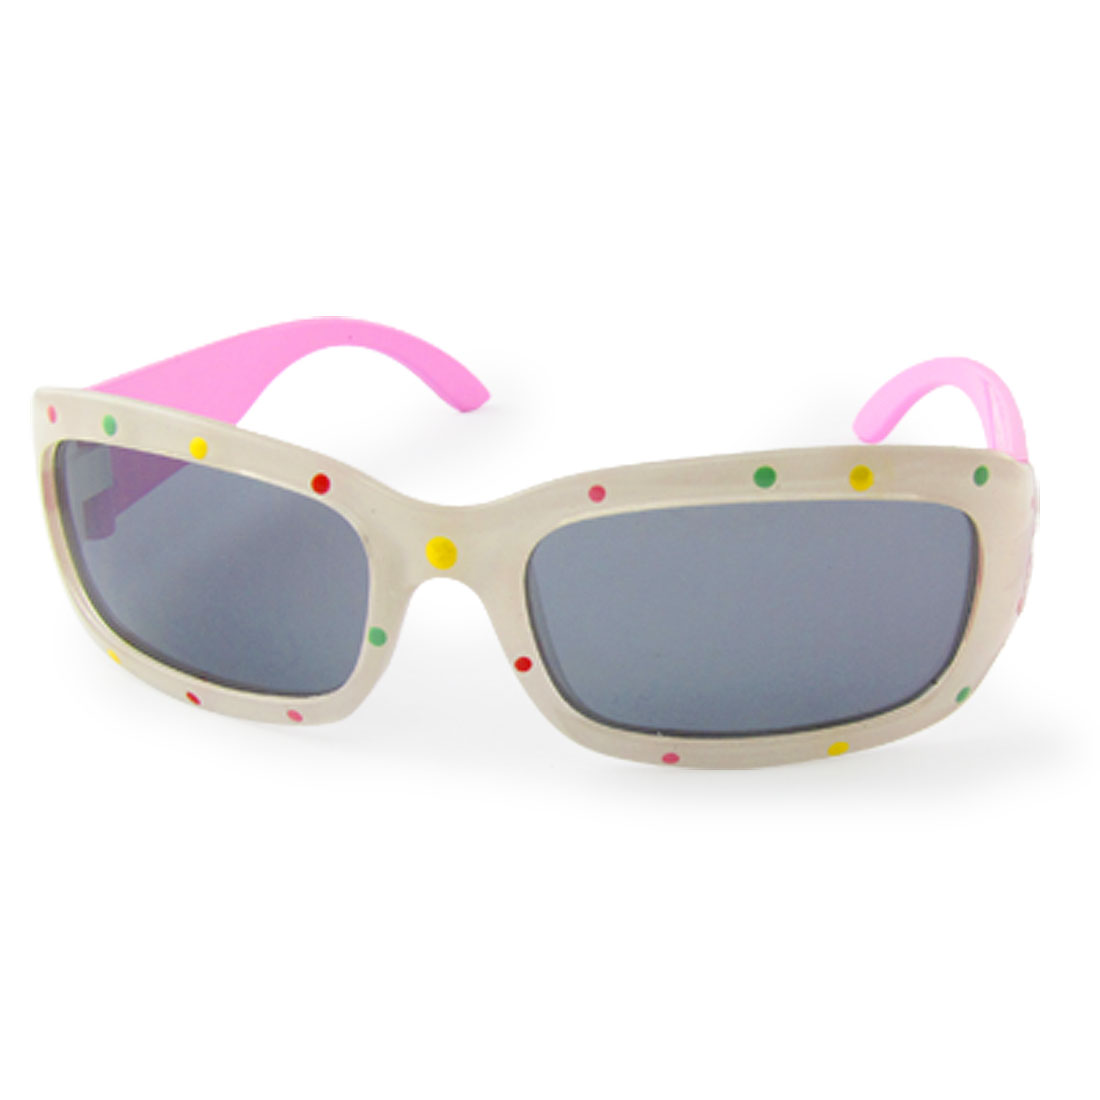 White Frame Pink Temples Dots Print Sunglasses for Kids